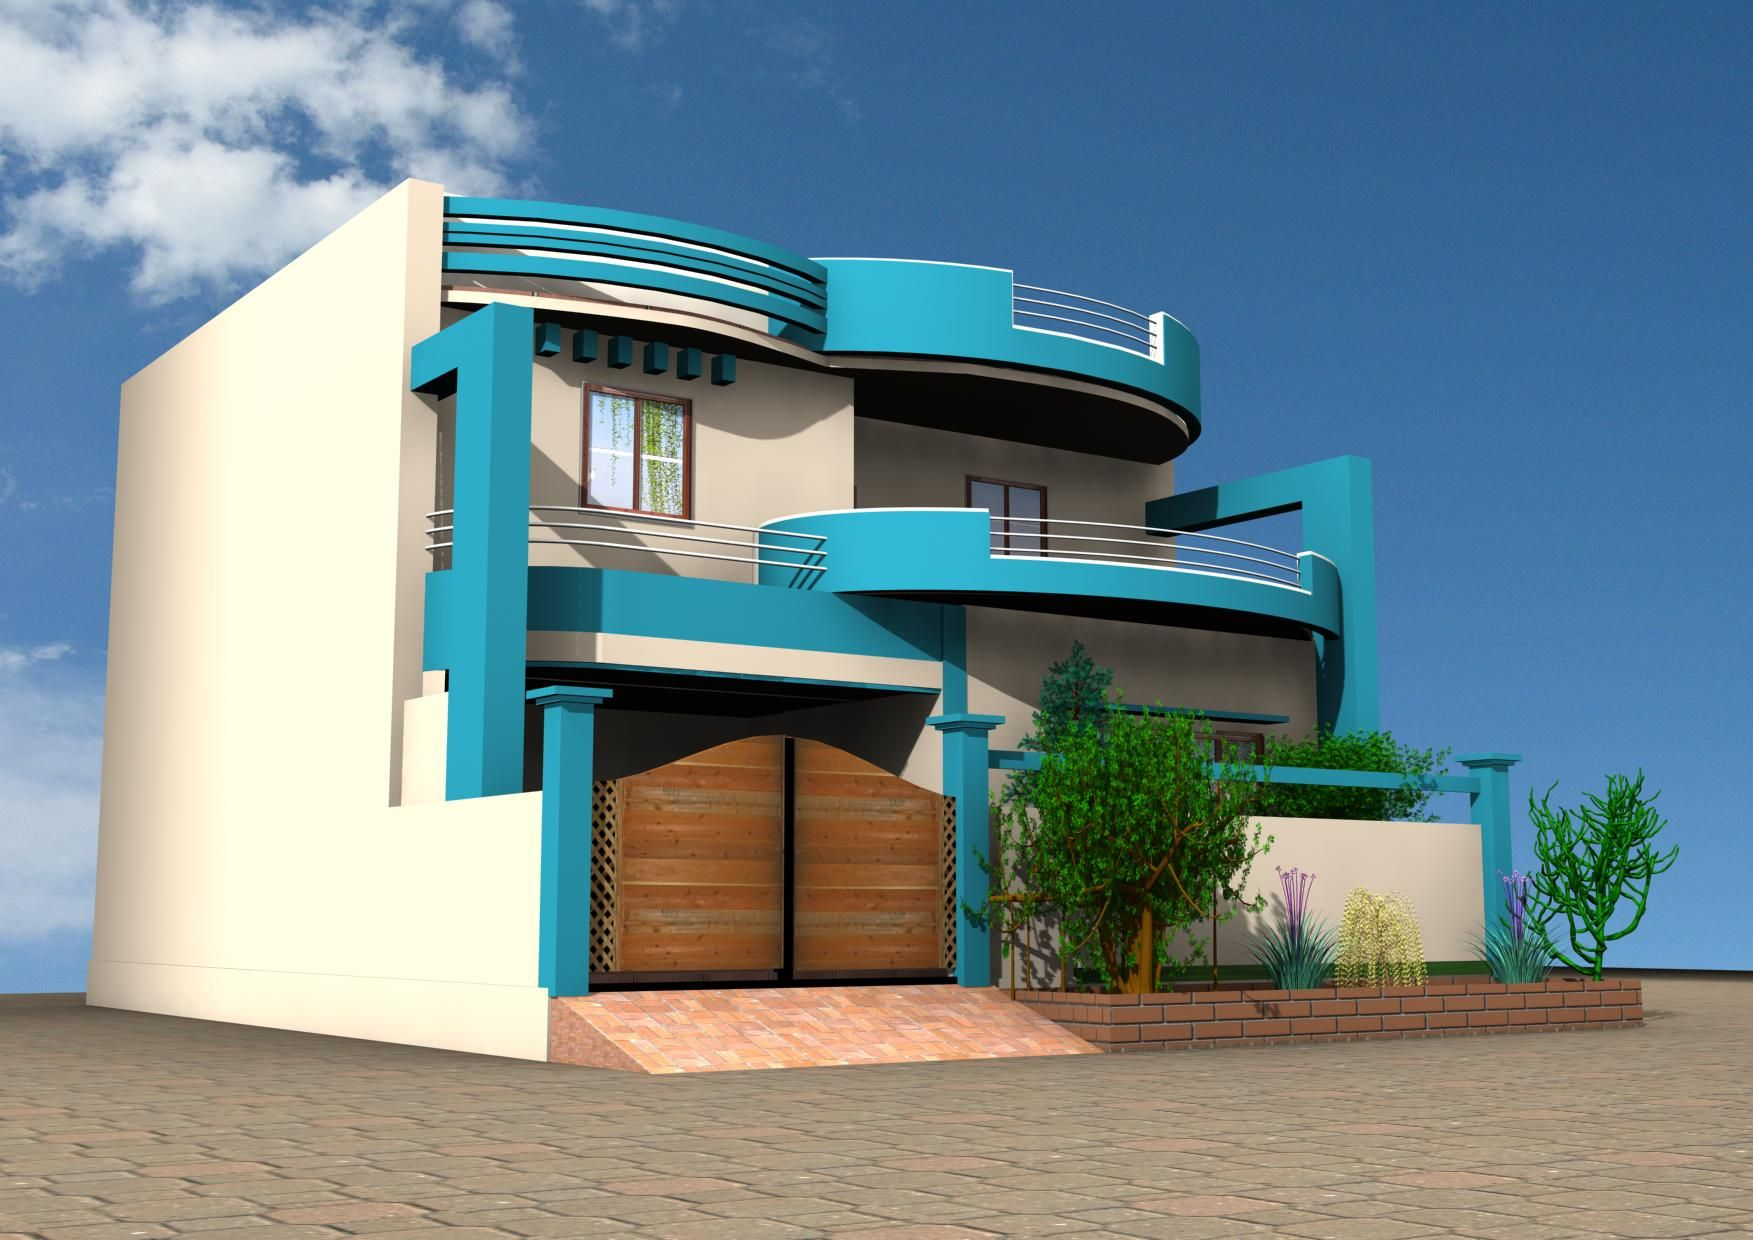 3d home design images hd 1080p Hd home design 3d